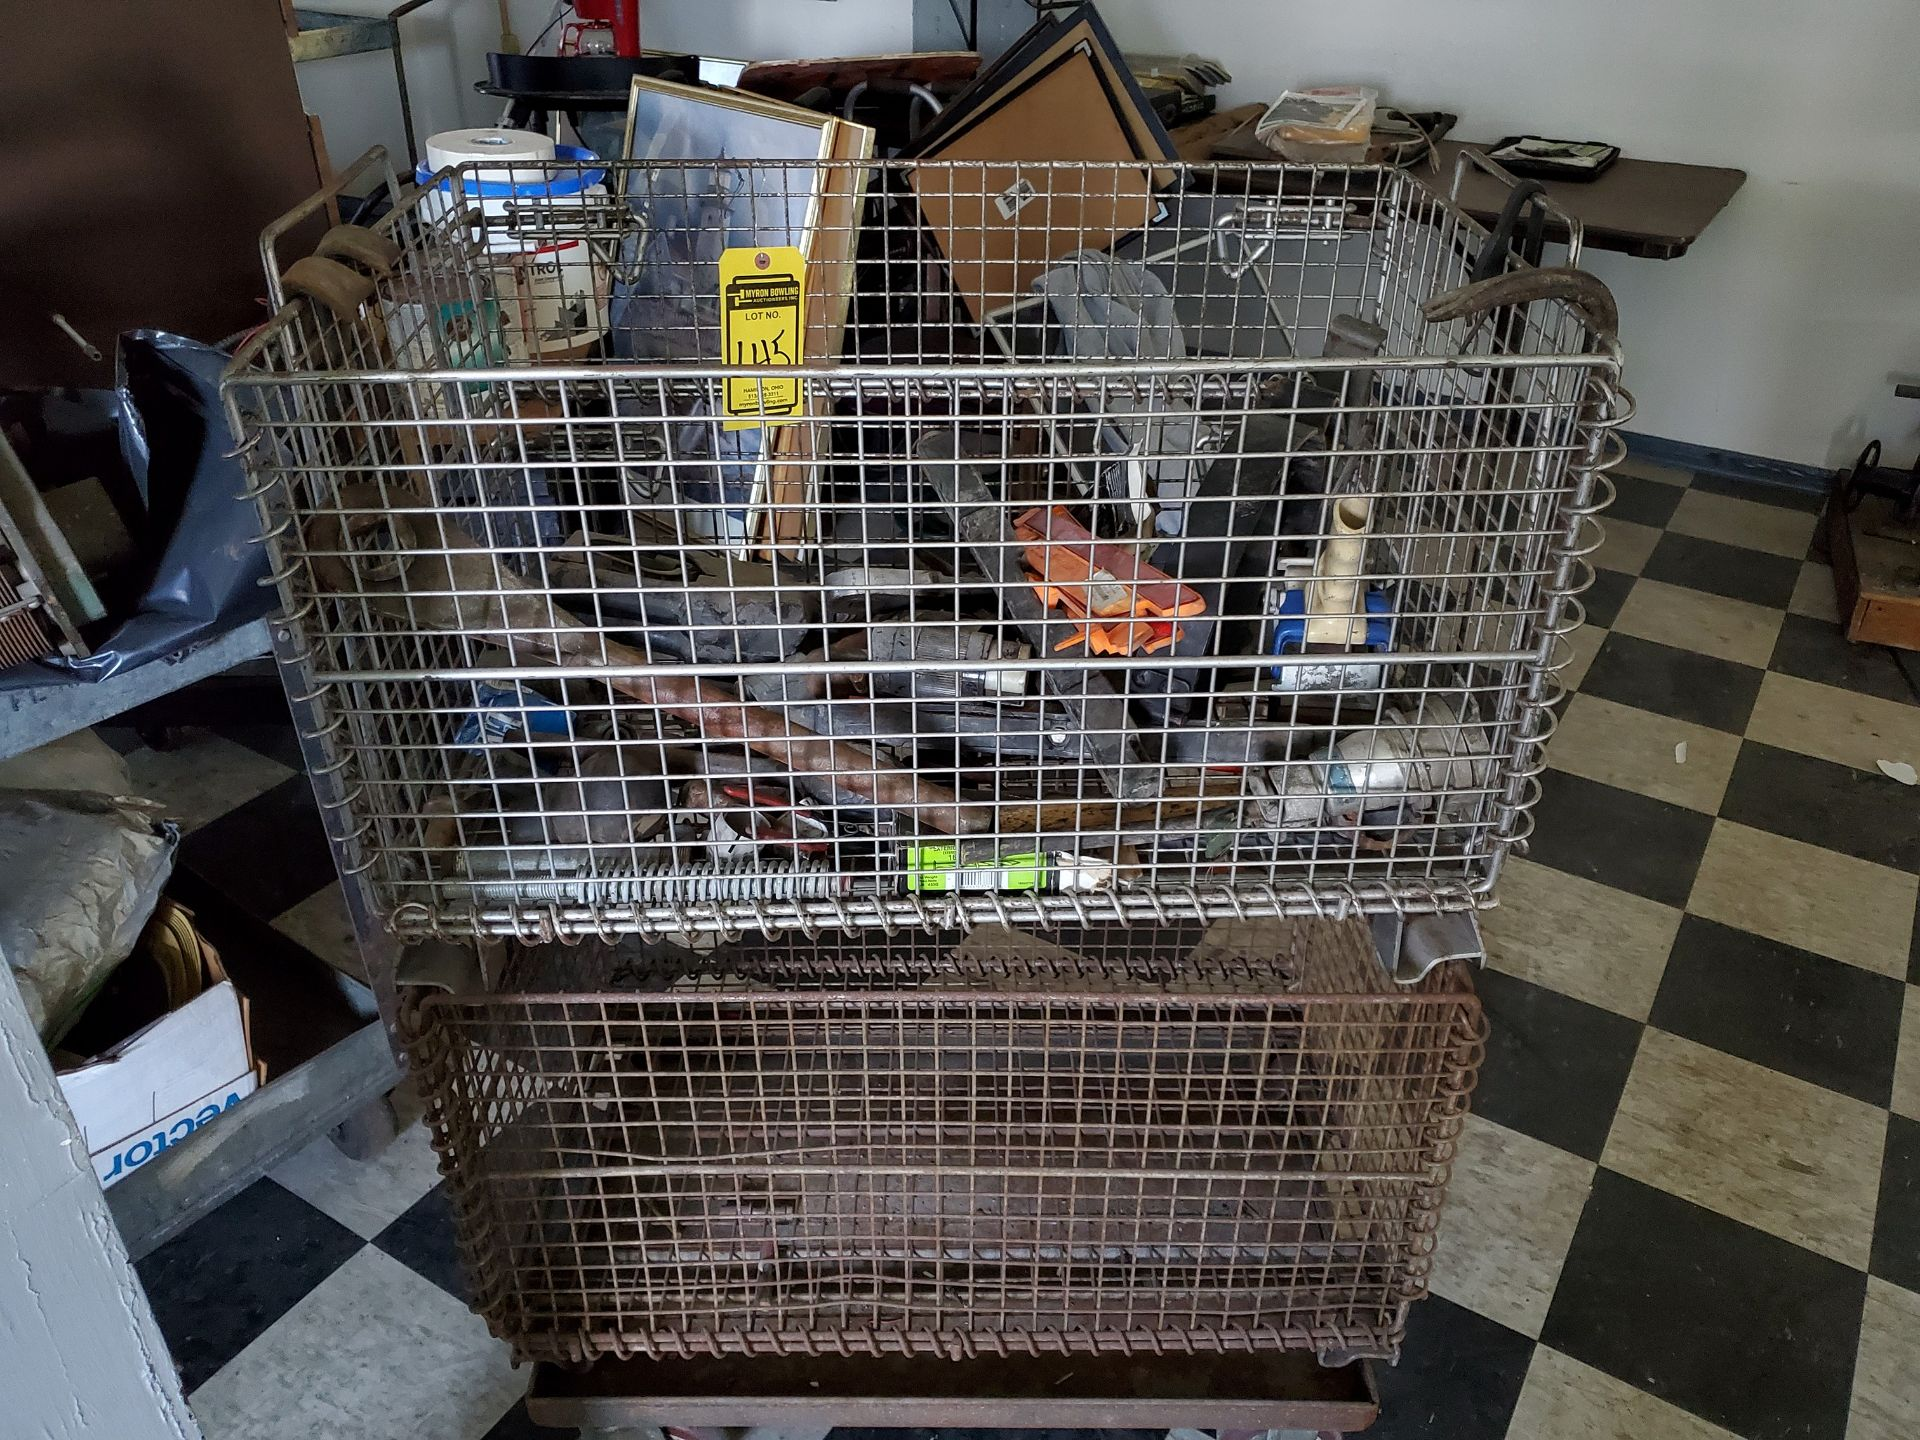 Lot 145 - CART & (2) WIRE BASKETS W/ MISC. CONTENTS